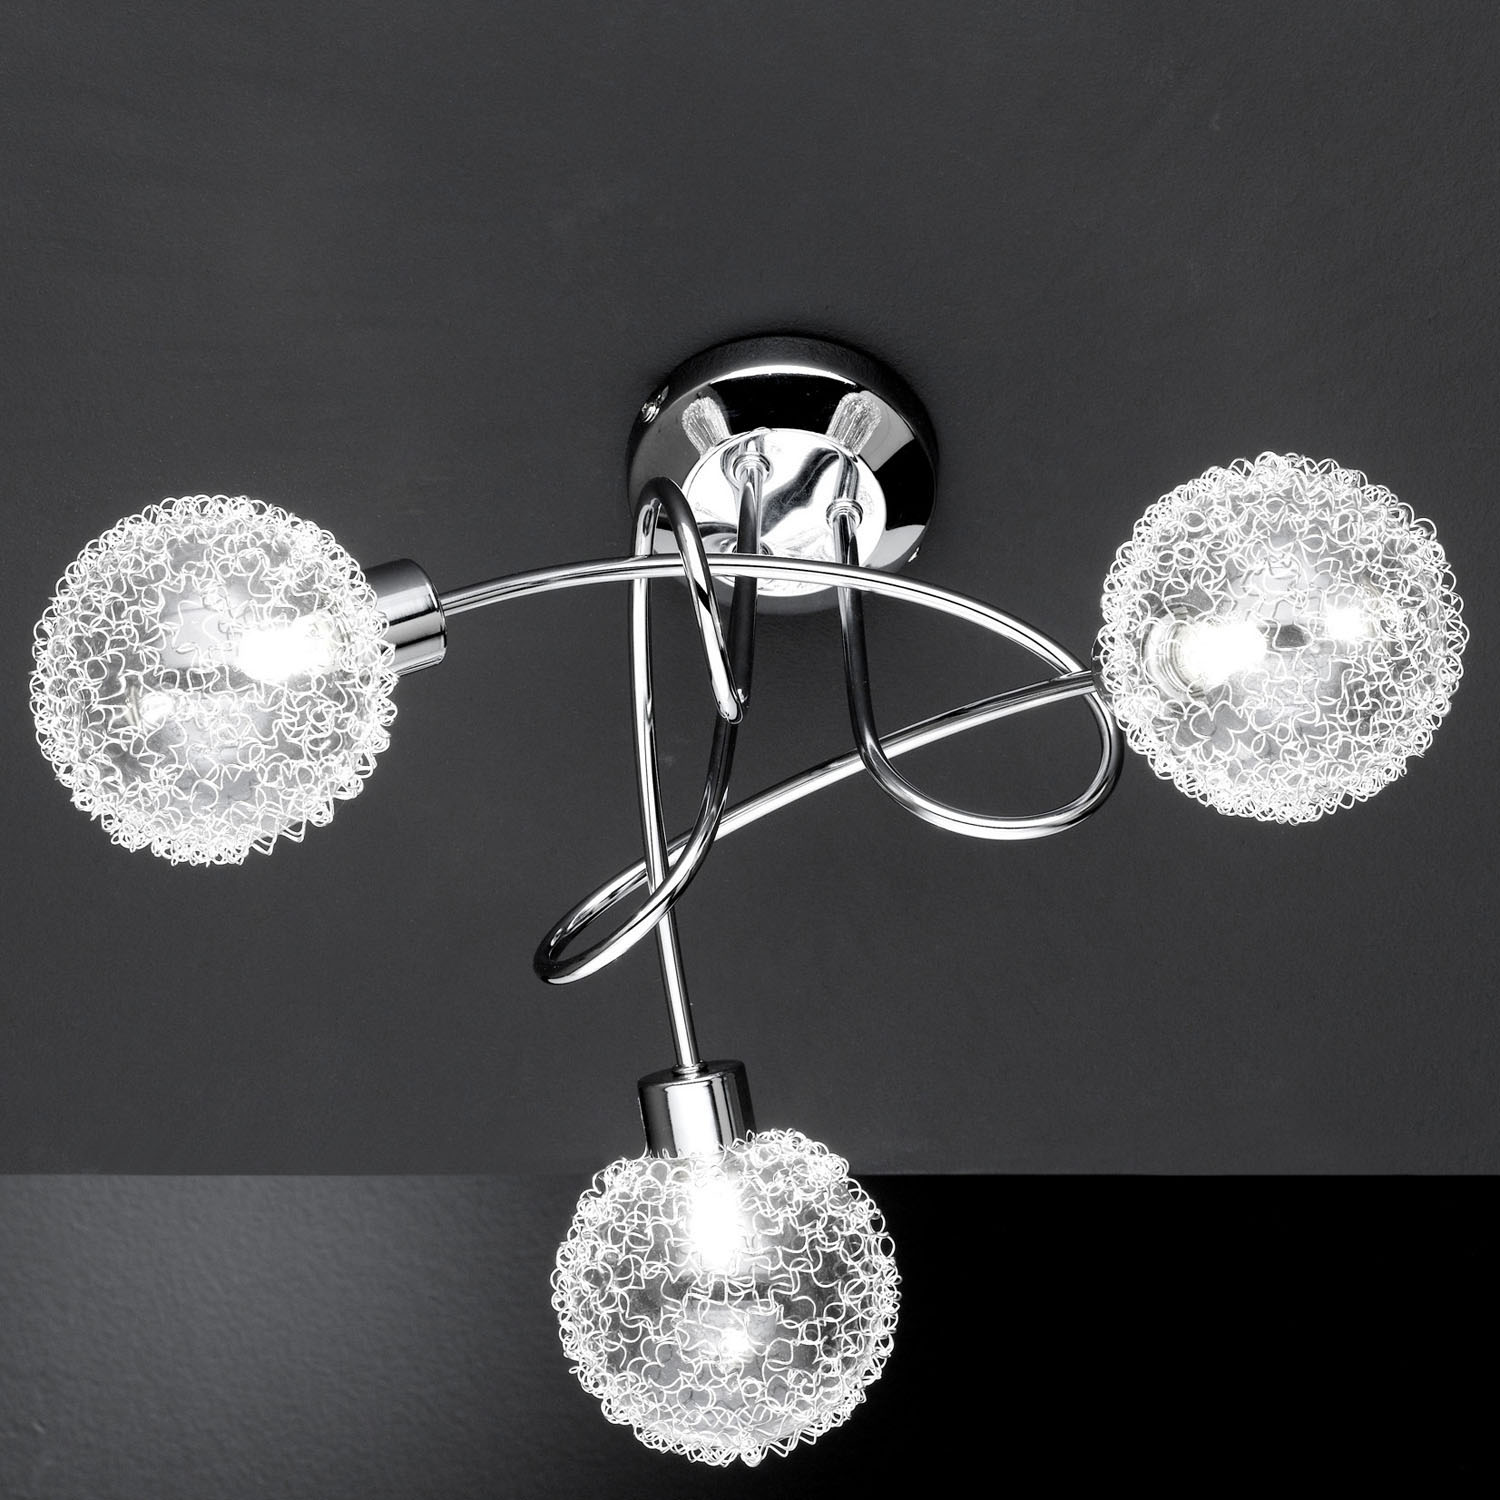 3 bulb ceiling light photo - 6